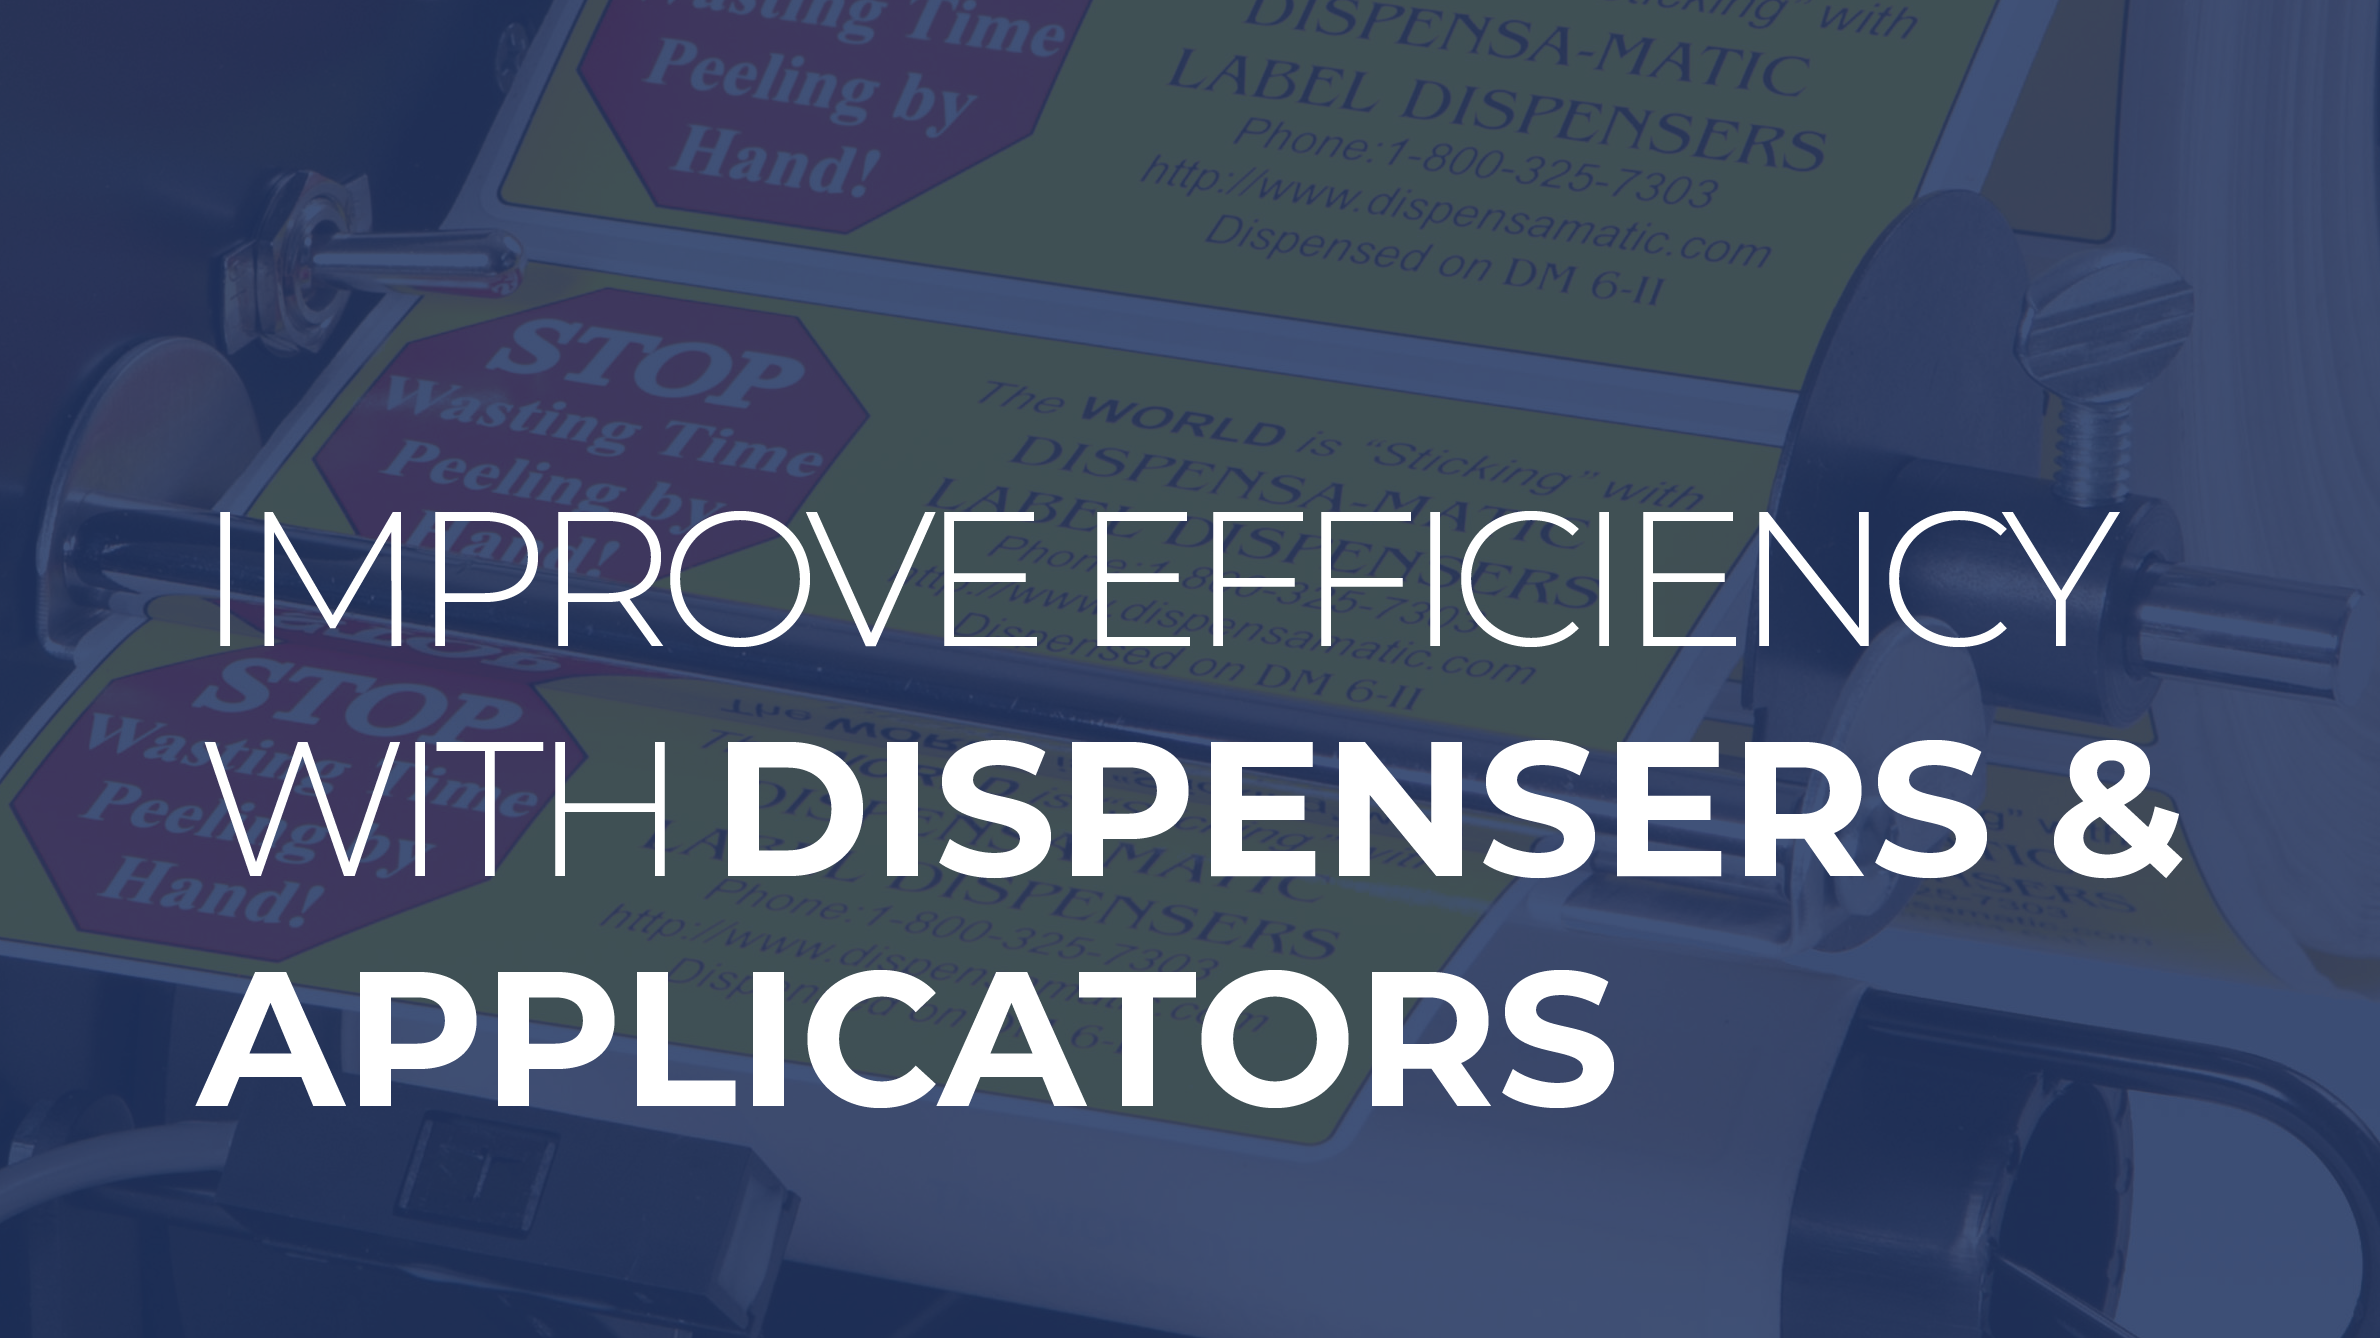 Improve Efficiency with Dispensers and Applicators